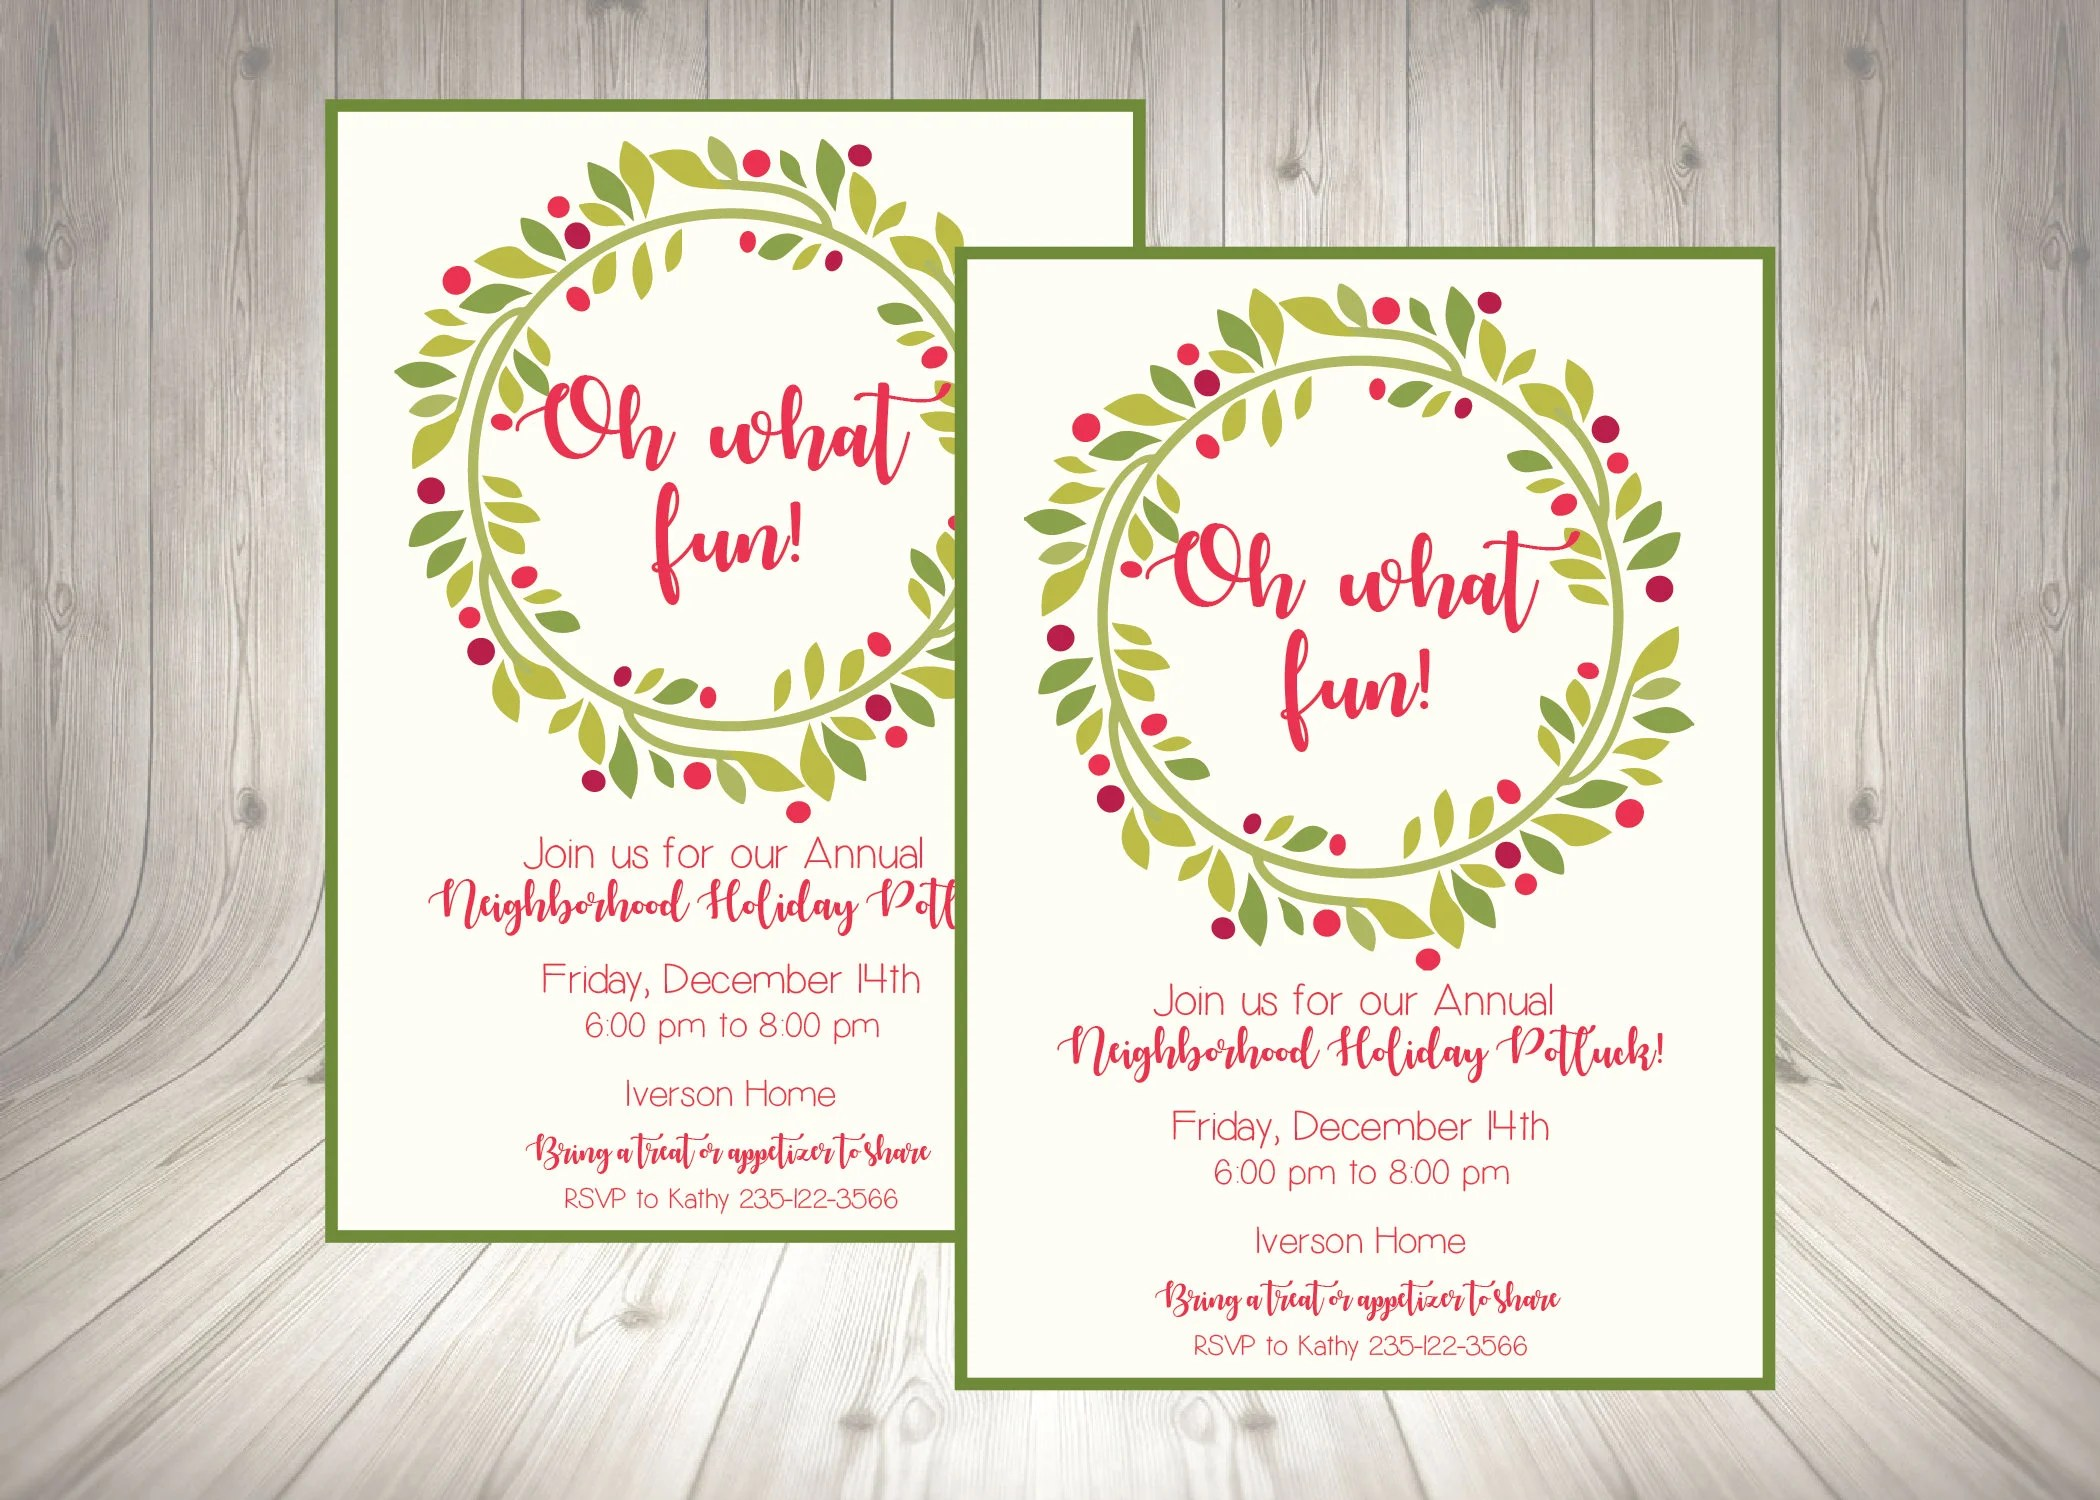 Christmas Flyer / Holiday Party Invitation / Work Holiday Etsy